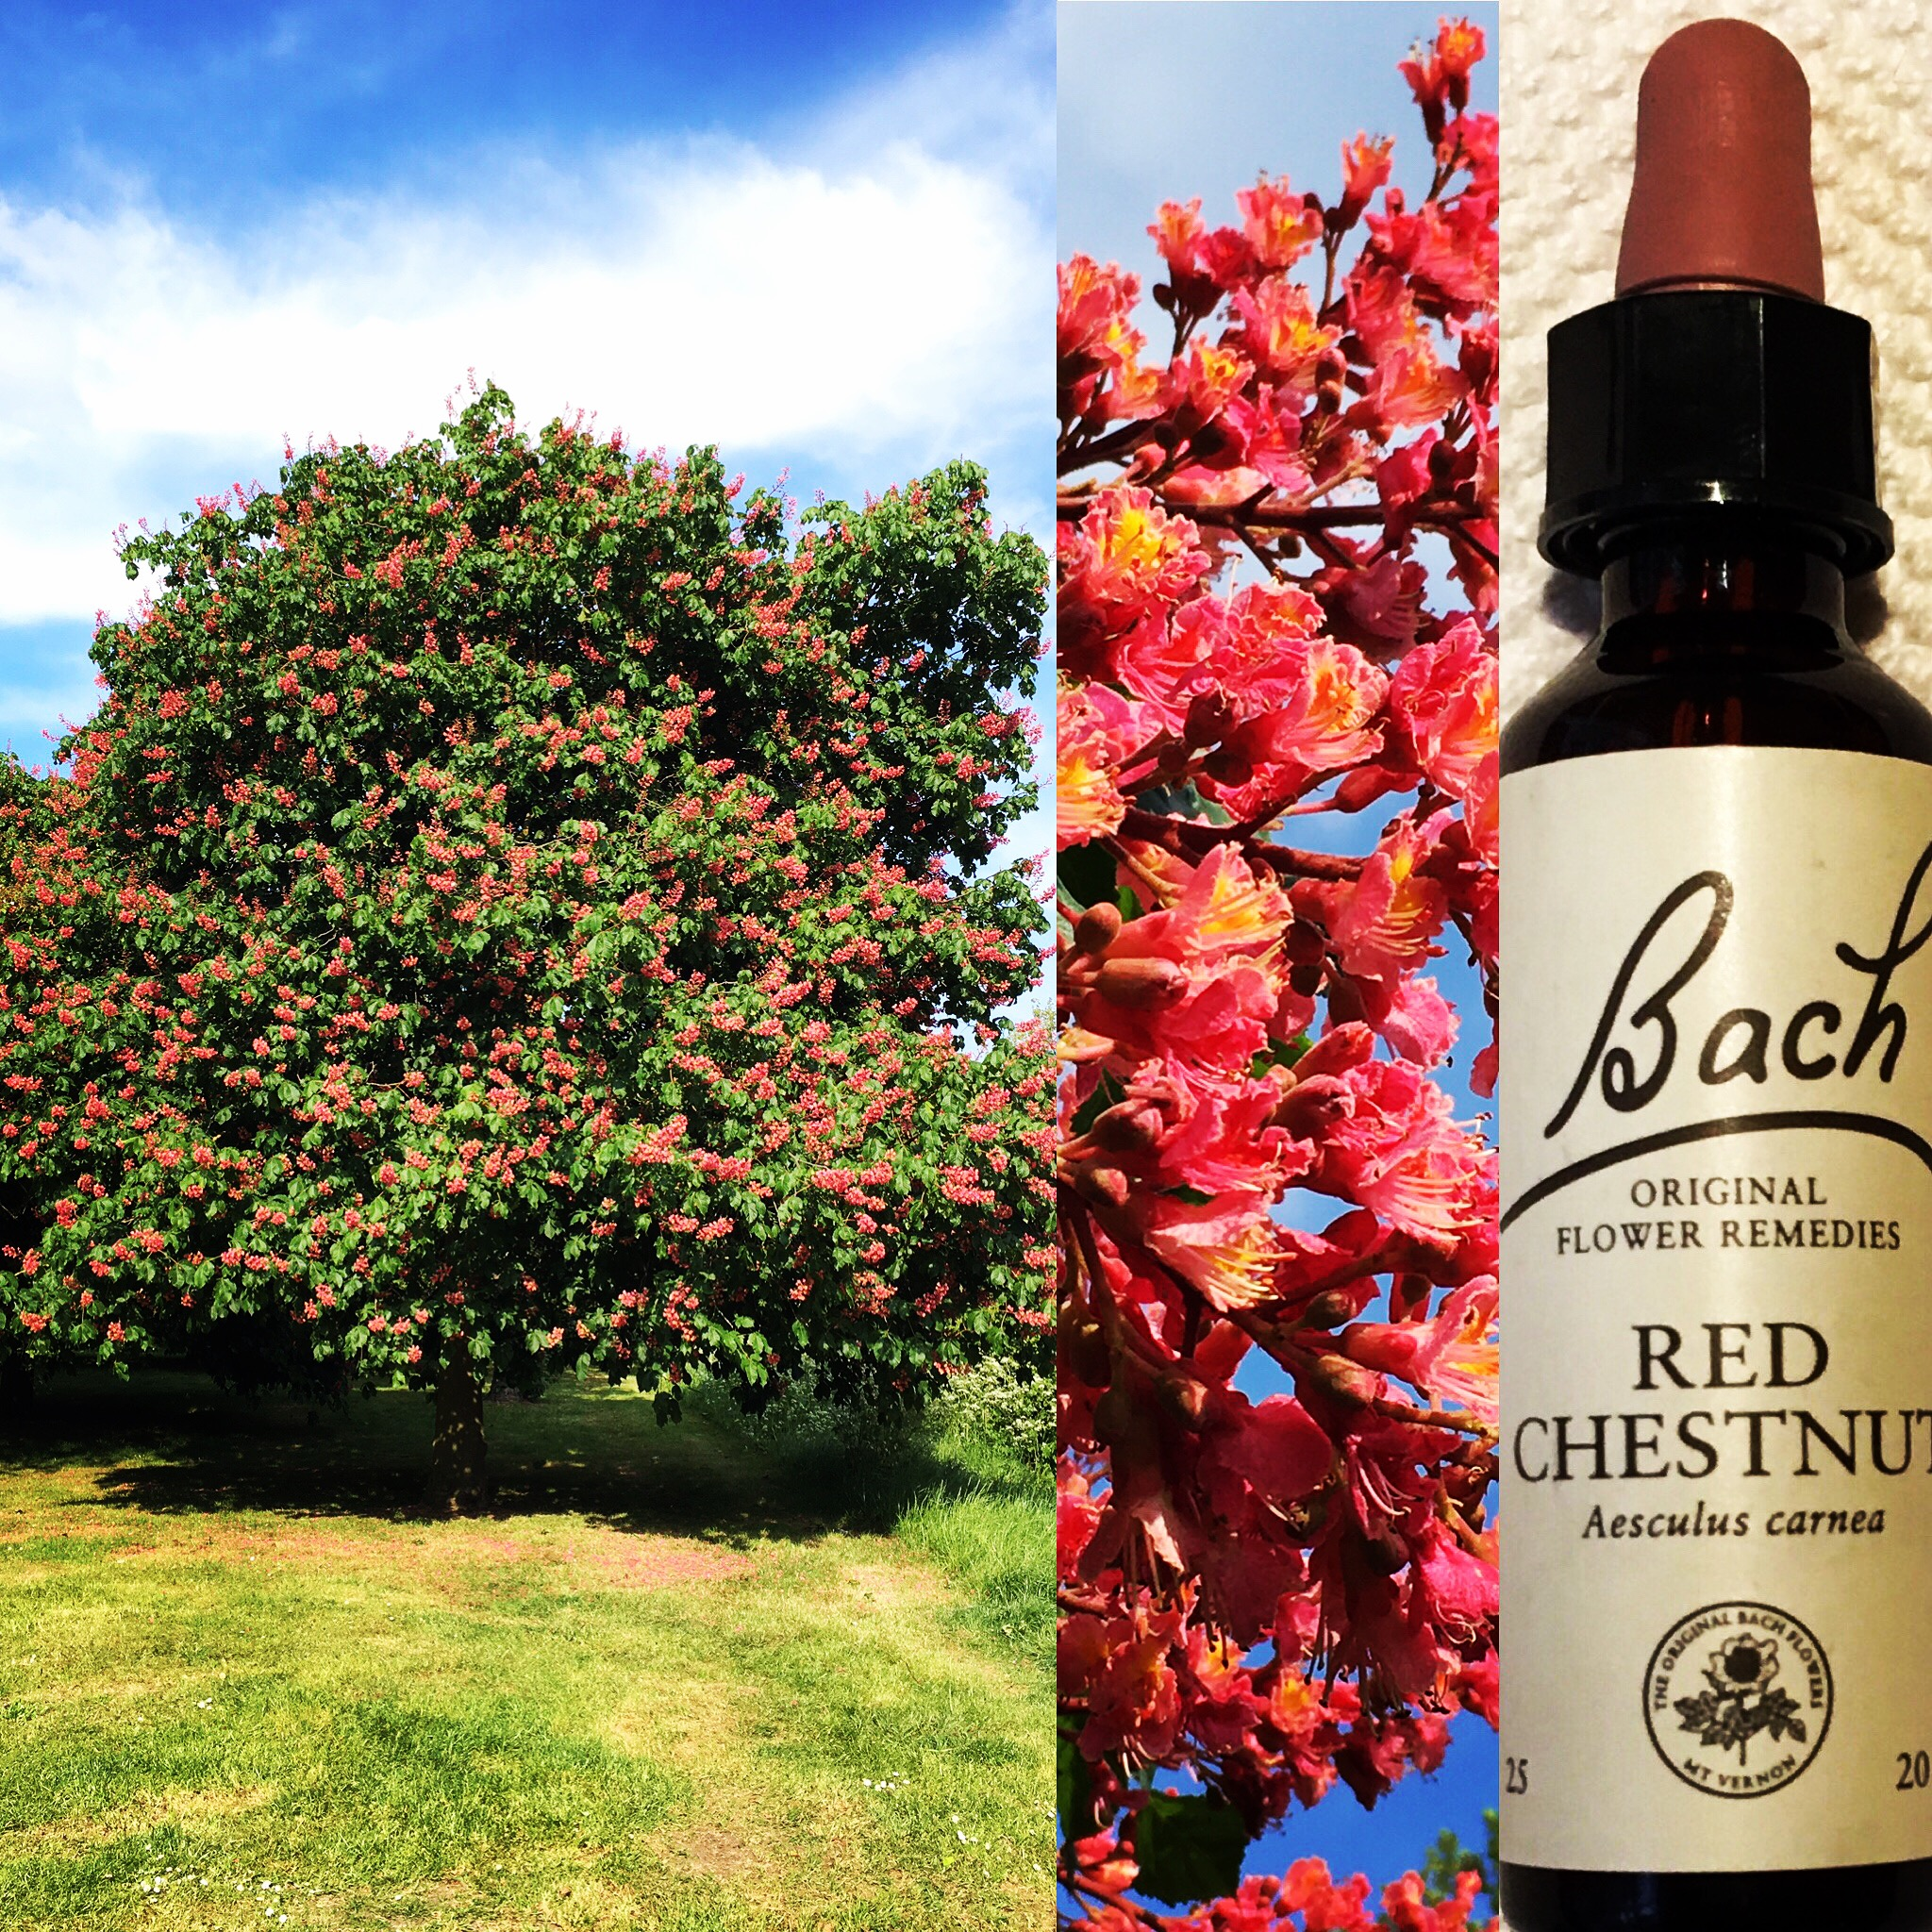 About The Red Chestnut Bach Flower Remedy Sobre O Floral Red